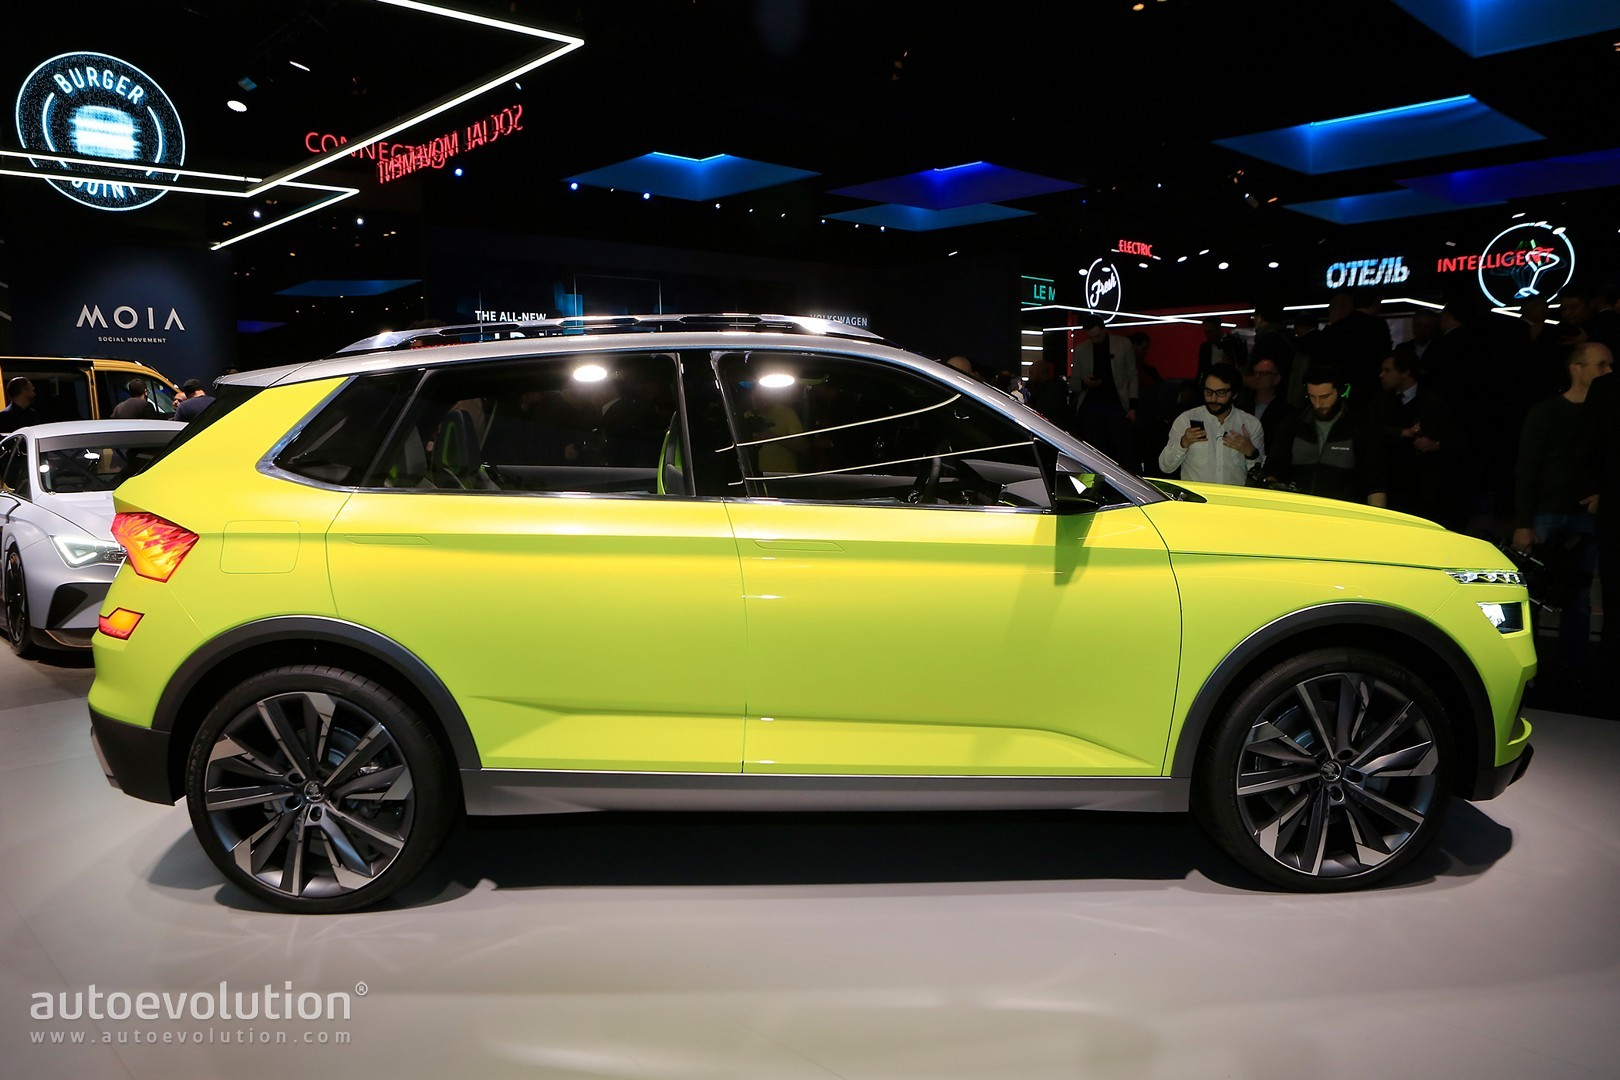 2019 Skoda Small Suv Previewed By Concept In Geneva Rides On New Rapid Platform